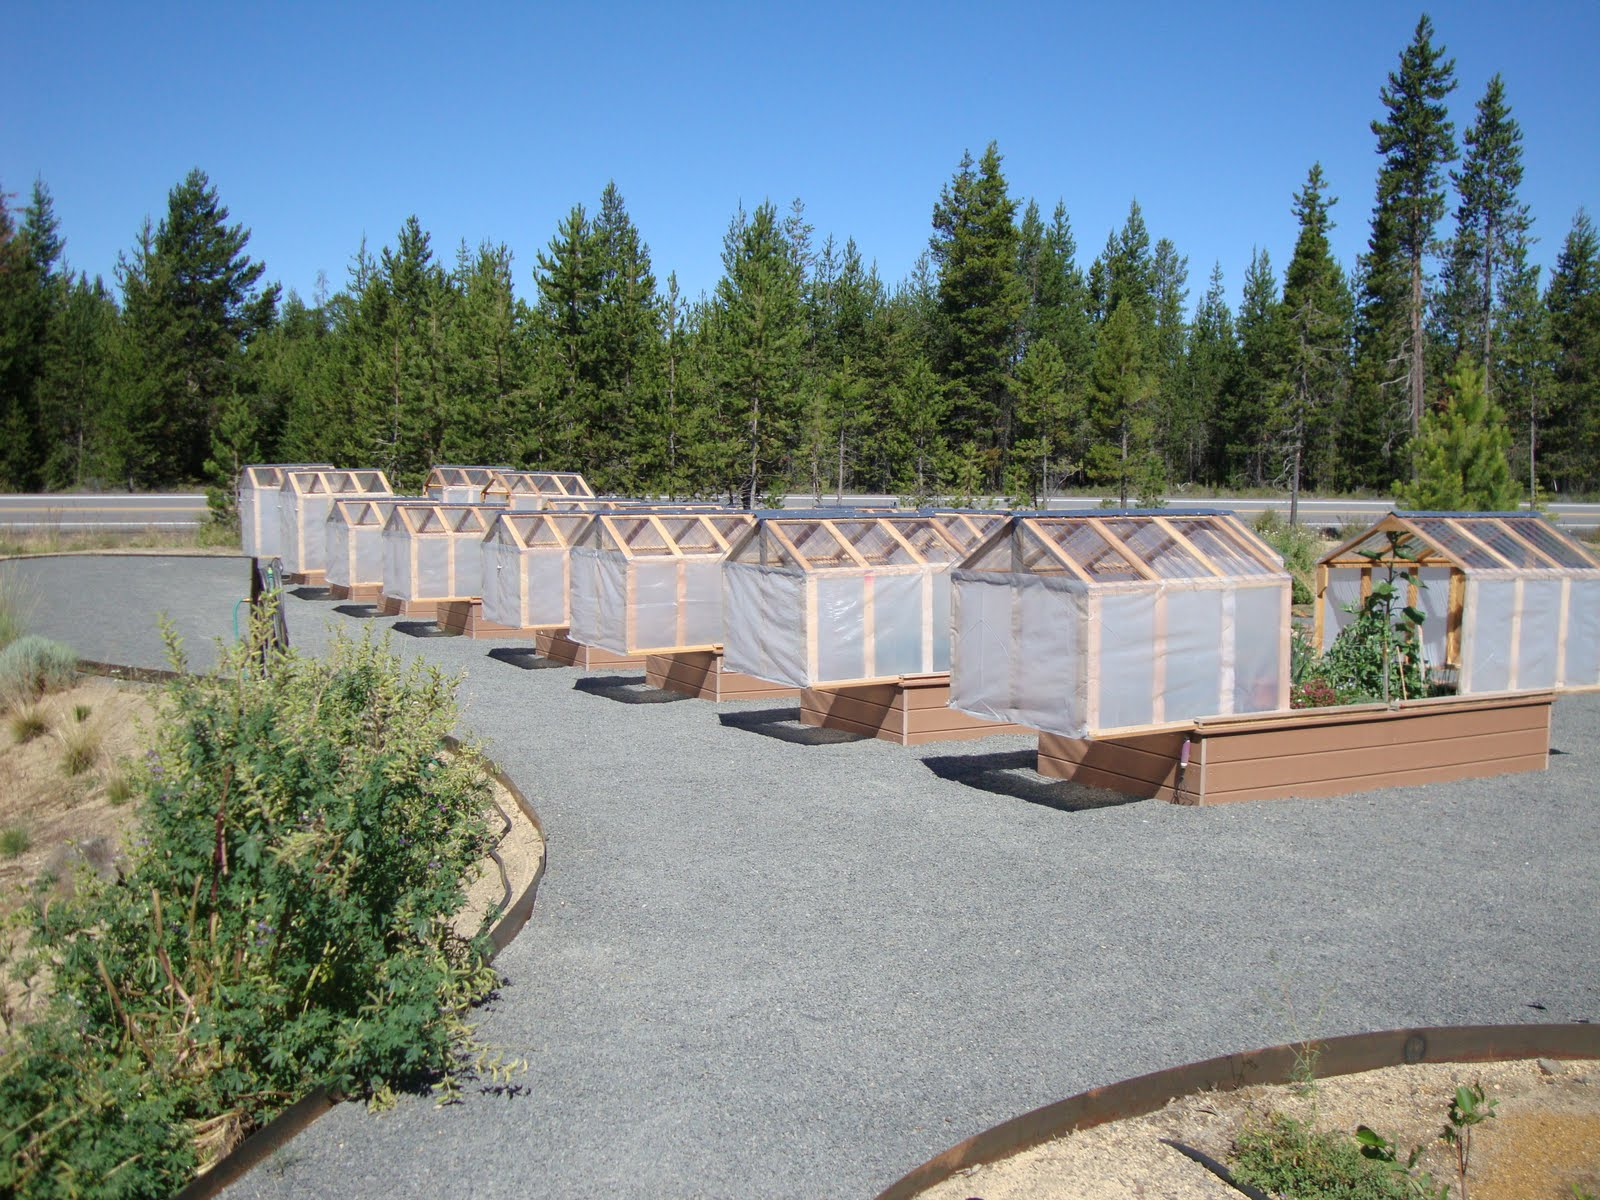 Mini Greenhouses Or Raised Beds Both